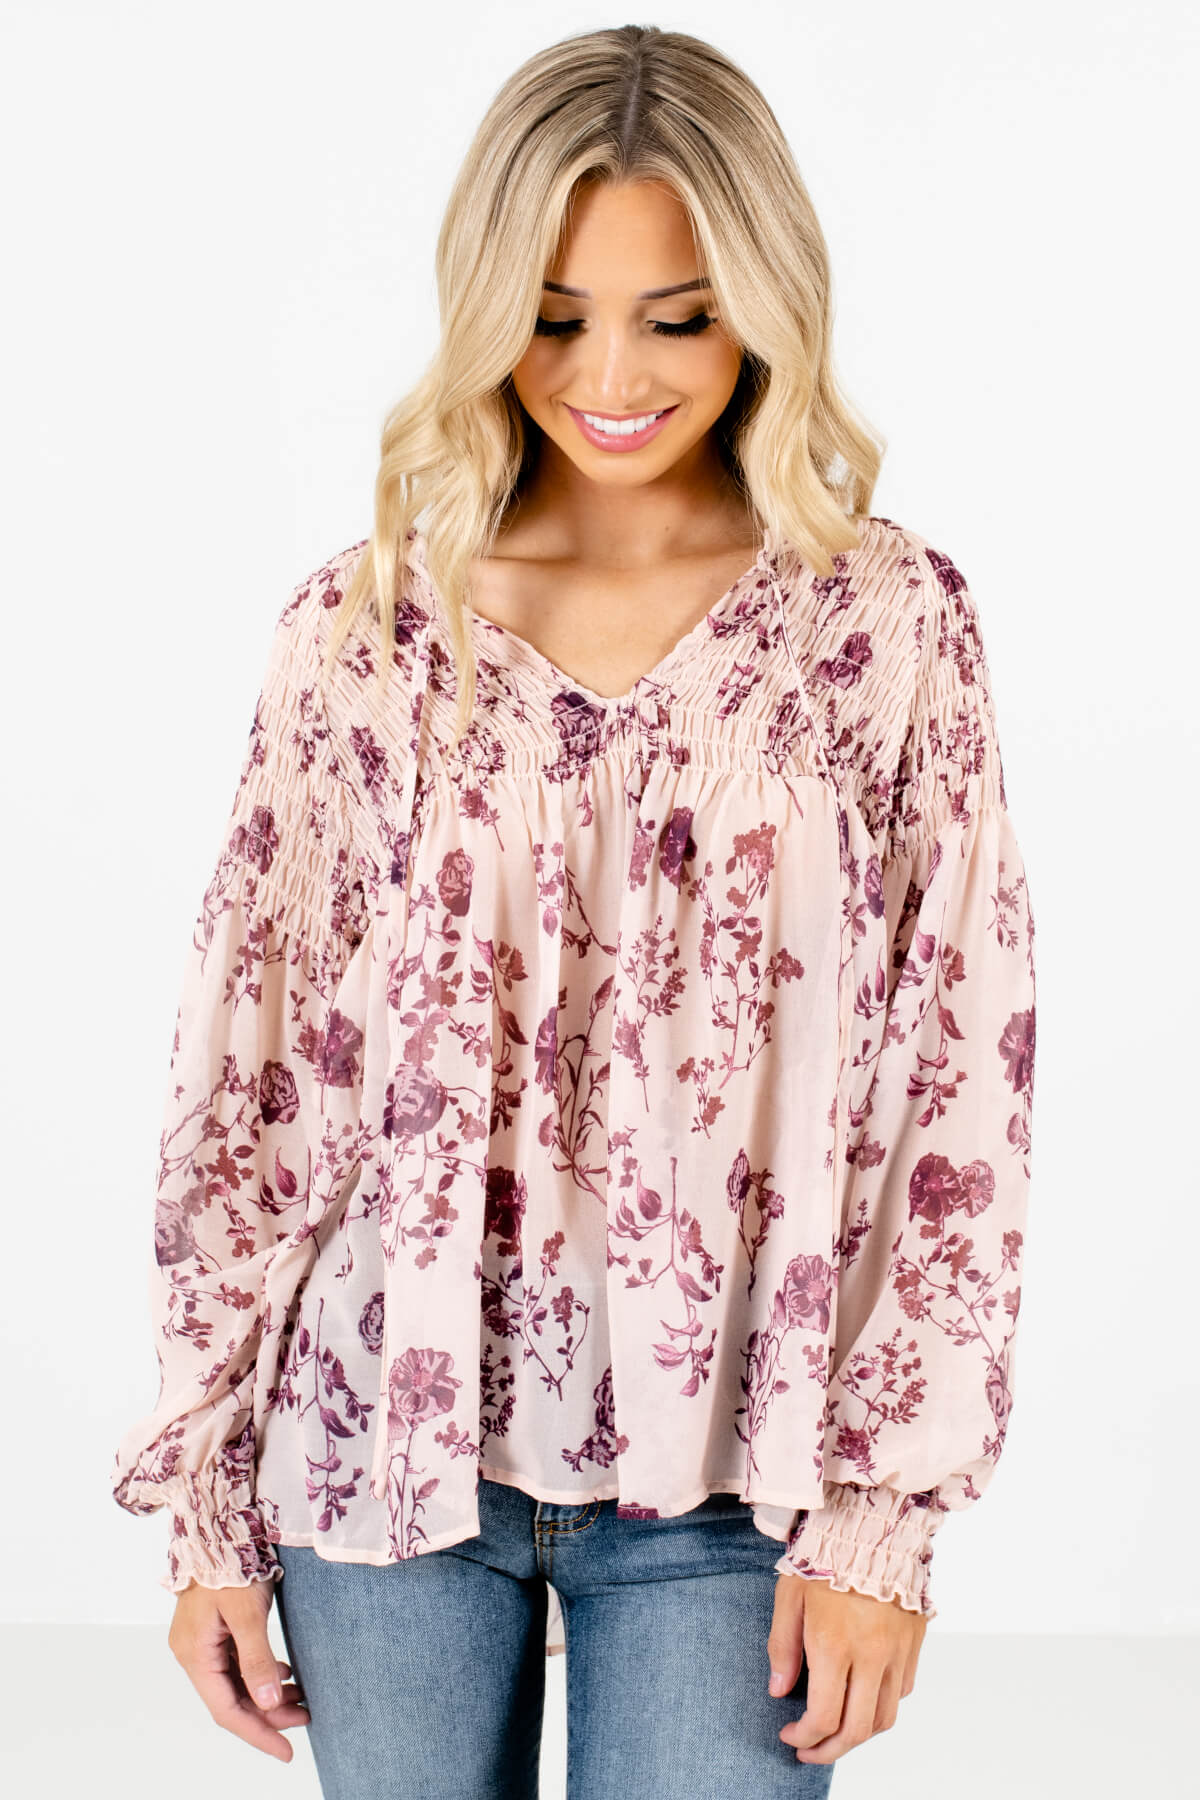 Beige Pink and Purple Floral Patterned Boutique Blouses for Women